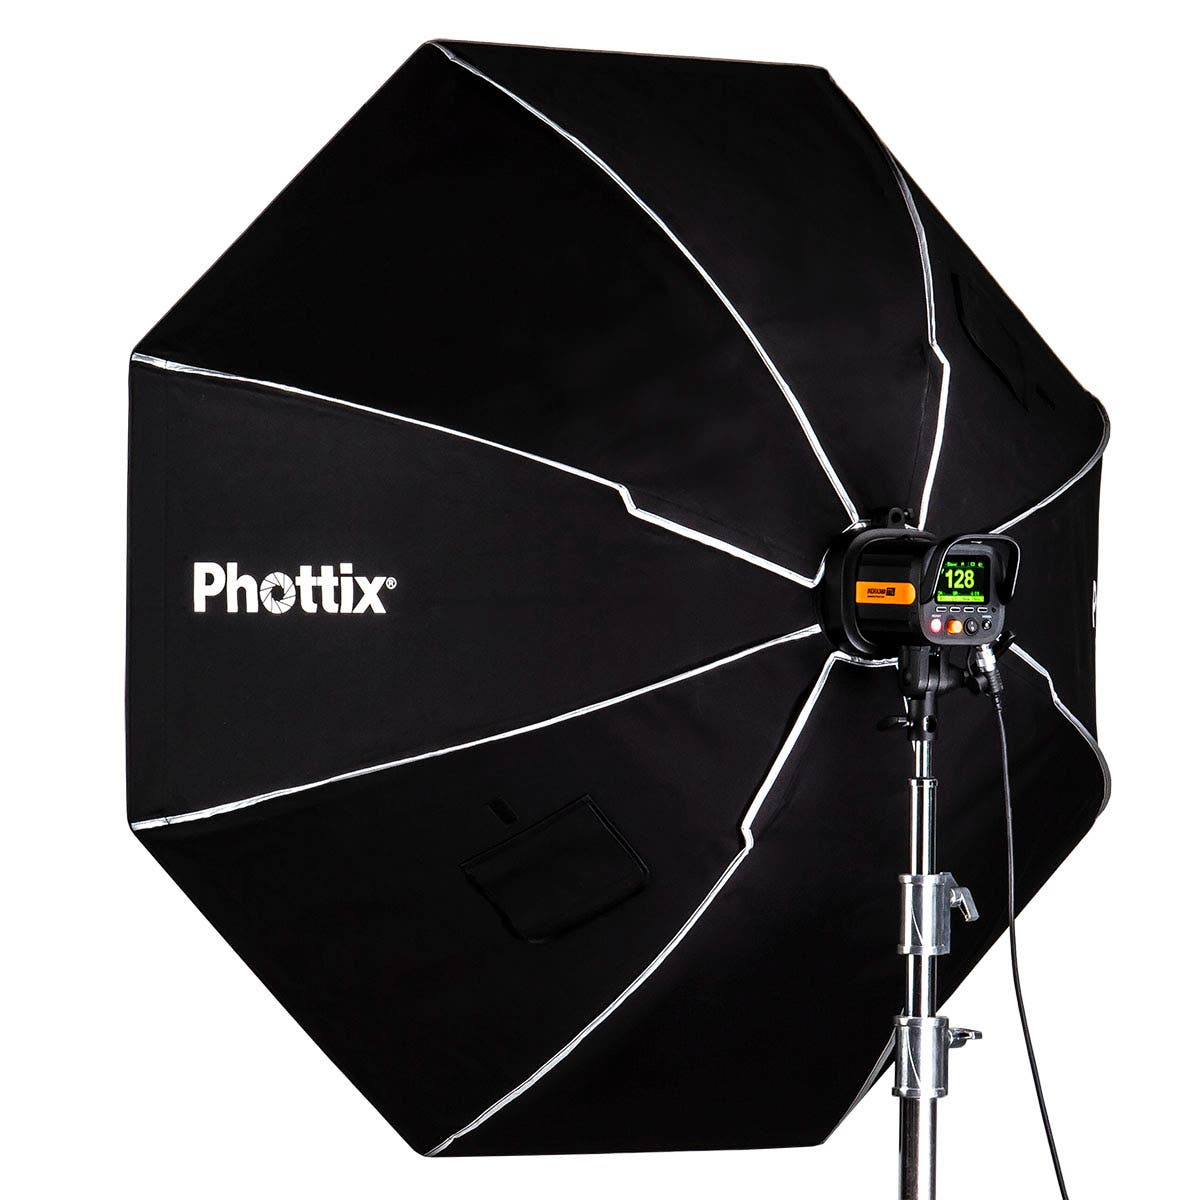 Phottix Releases Solas Series Softboxes